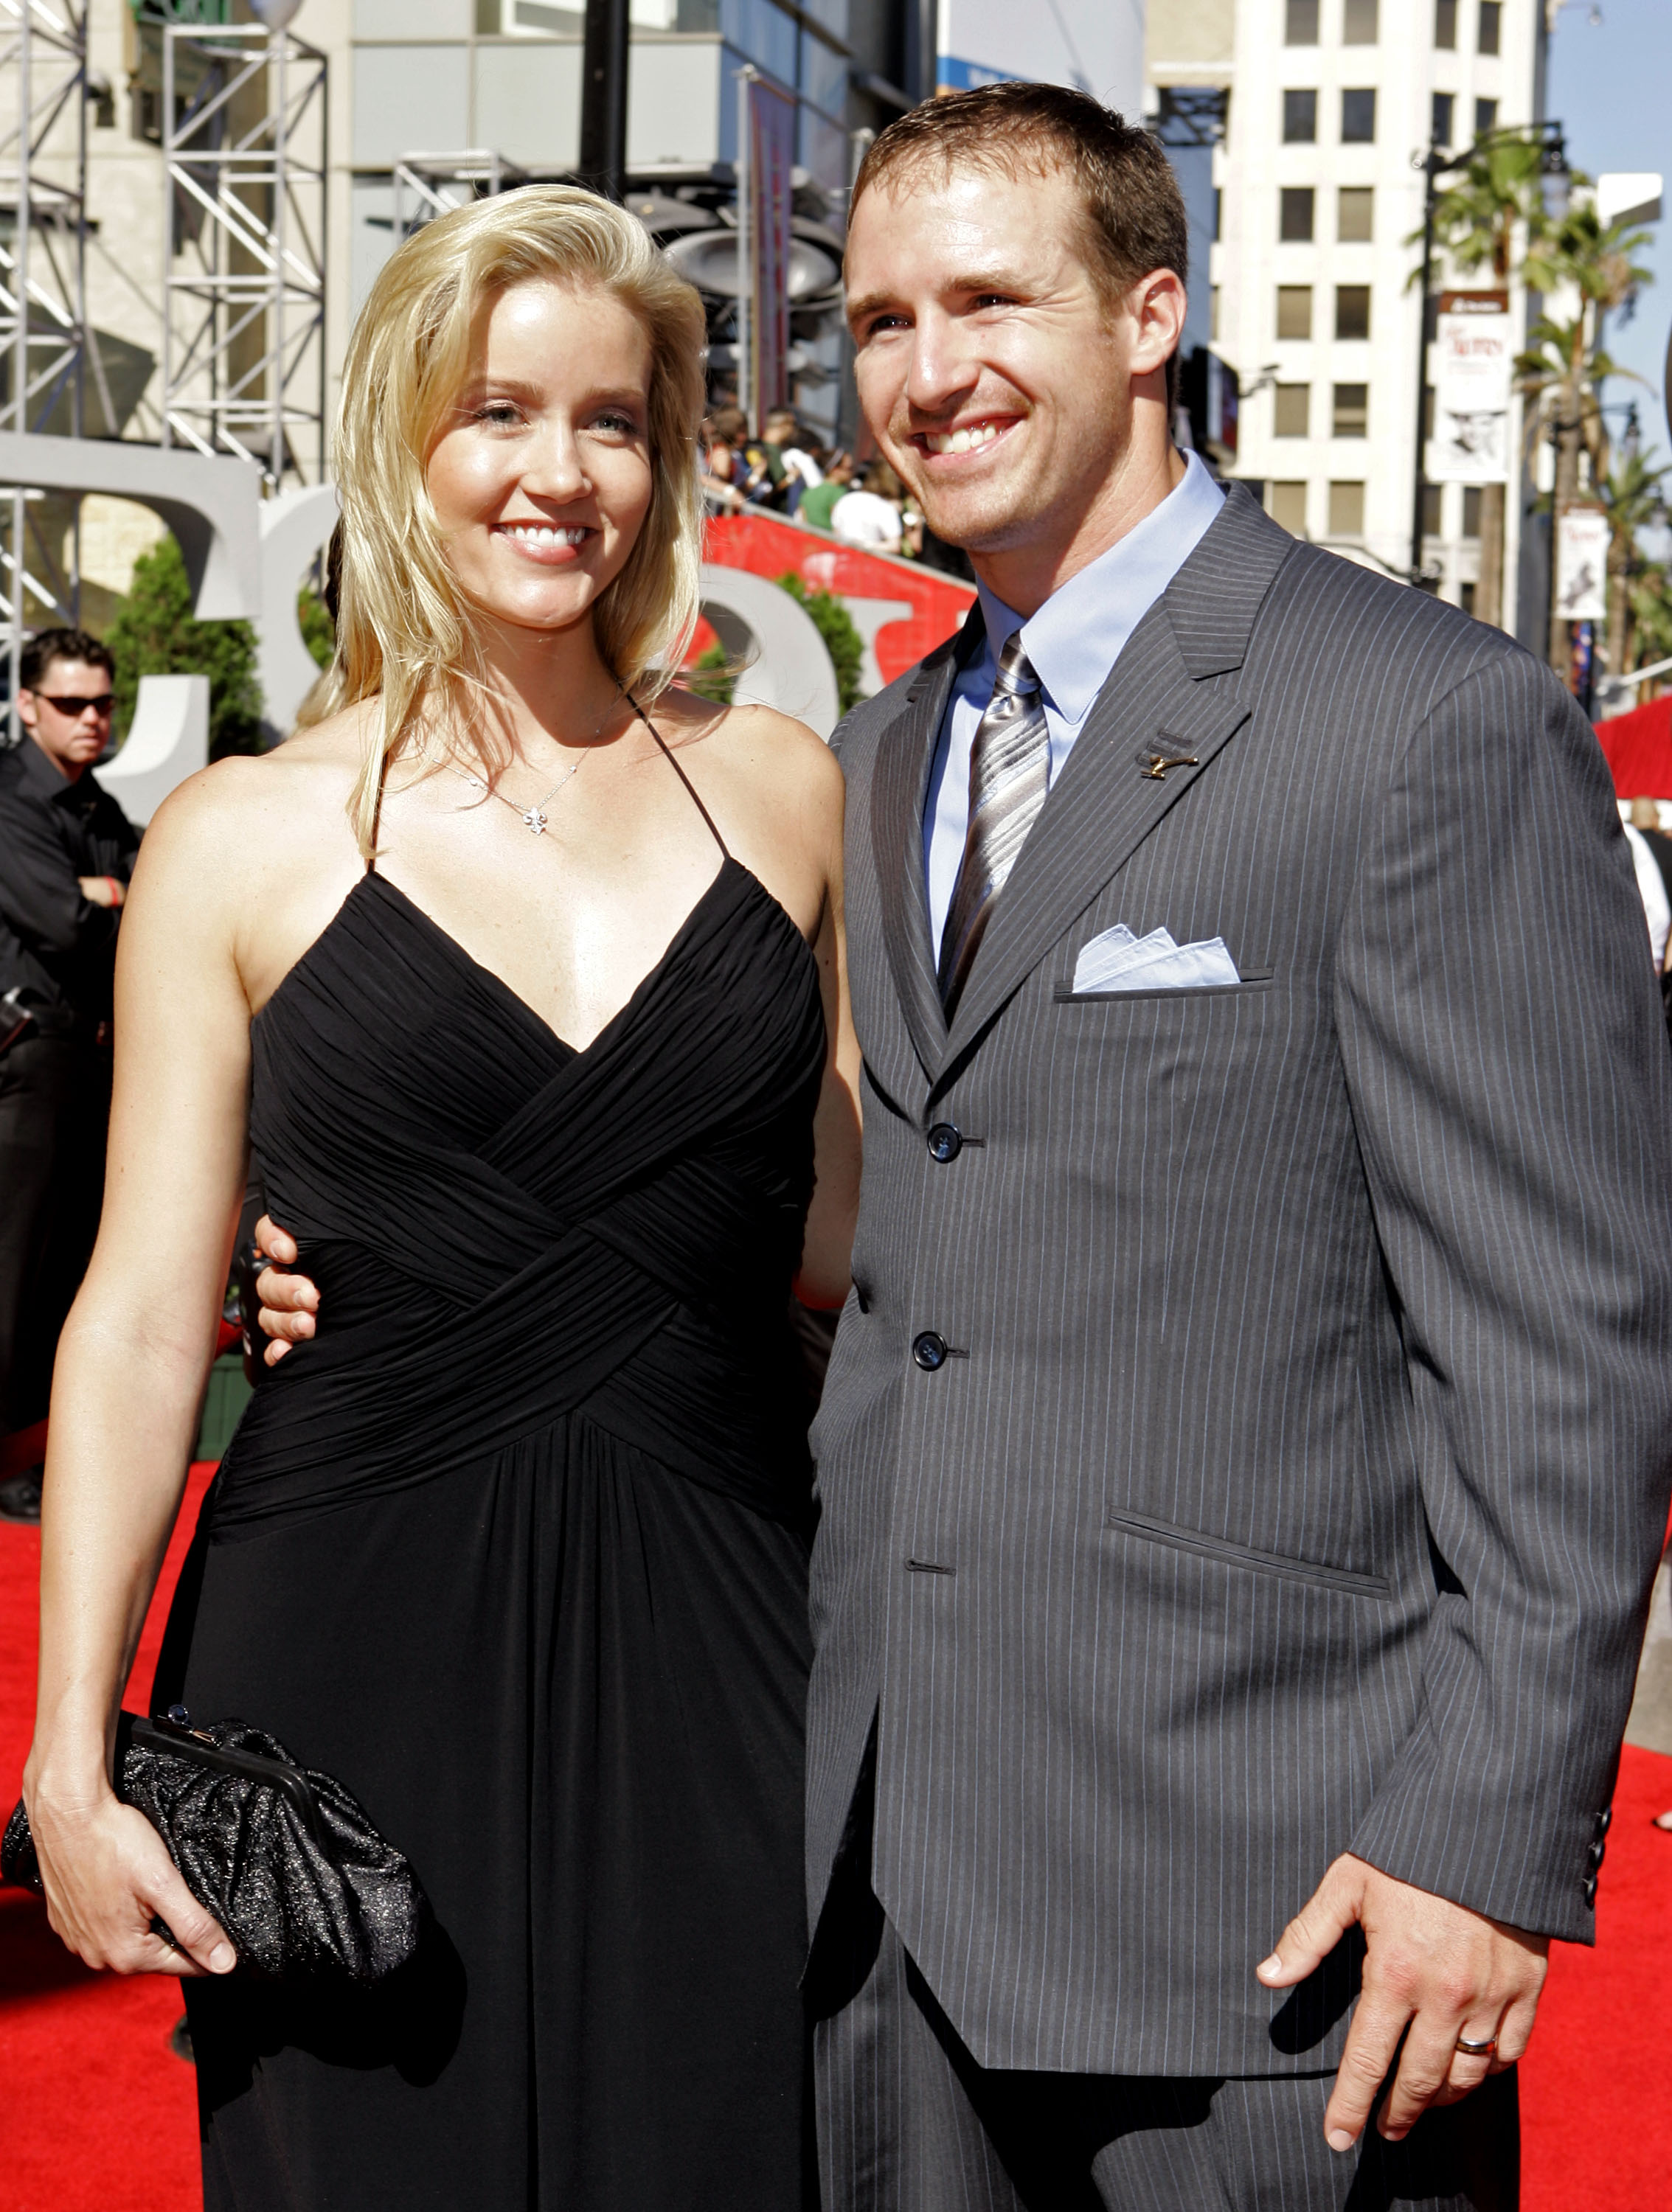 Drew Brees Wife Who Is Brittany Brees How Many Kids Do They Have Fanbuzz